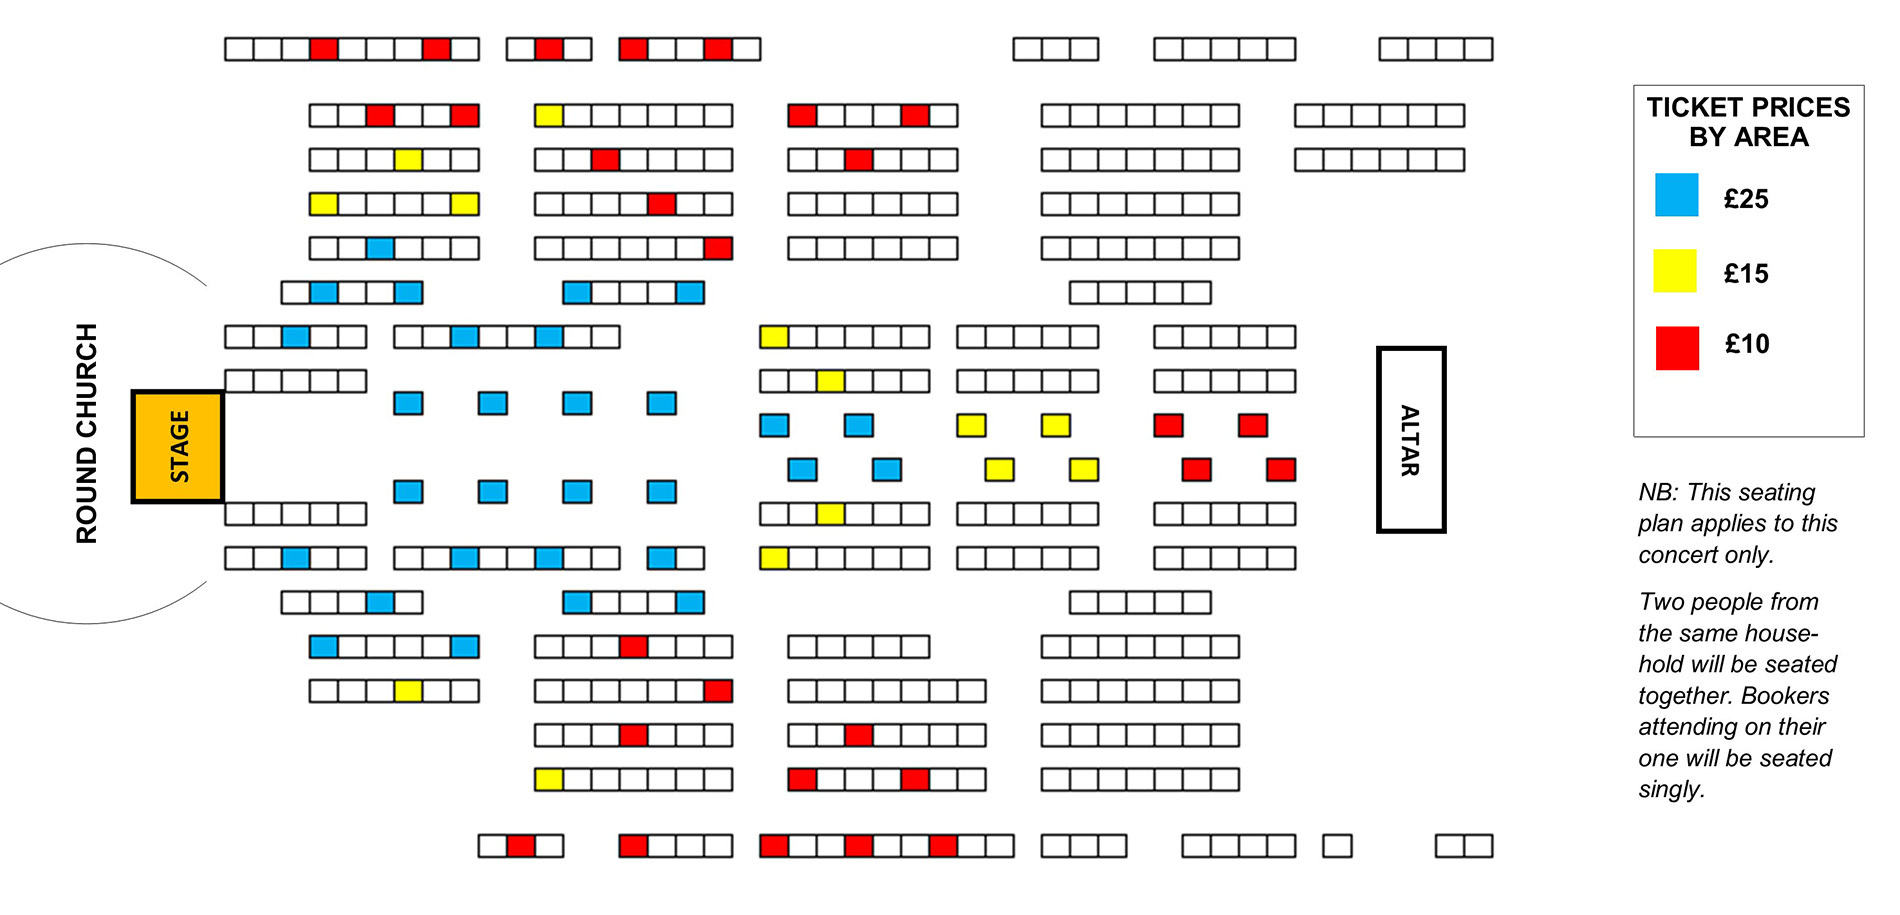 Seating plan Holst Singers